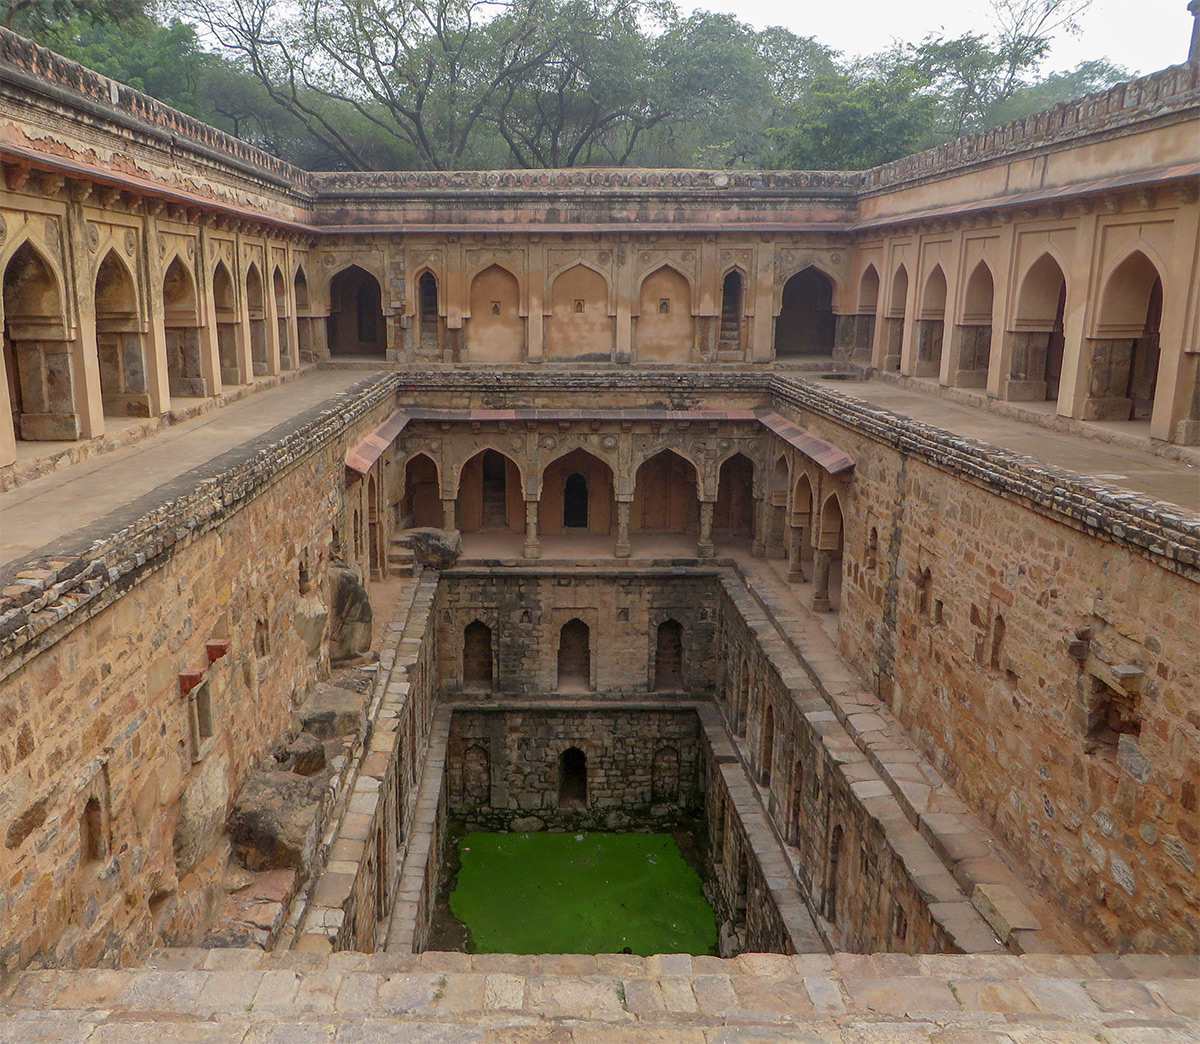 Stepwells by Victoria Lautman